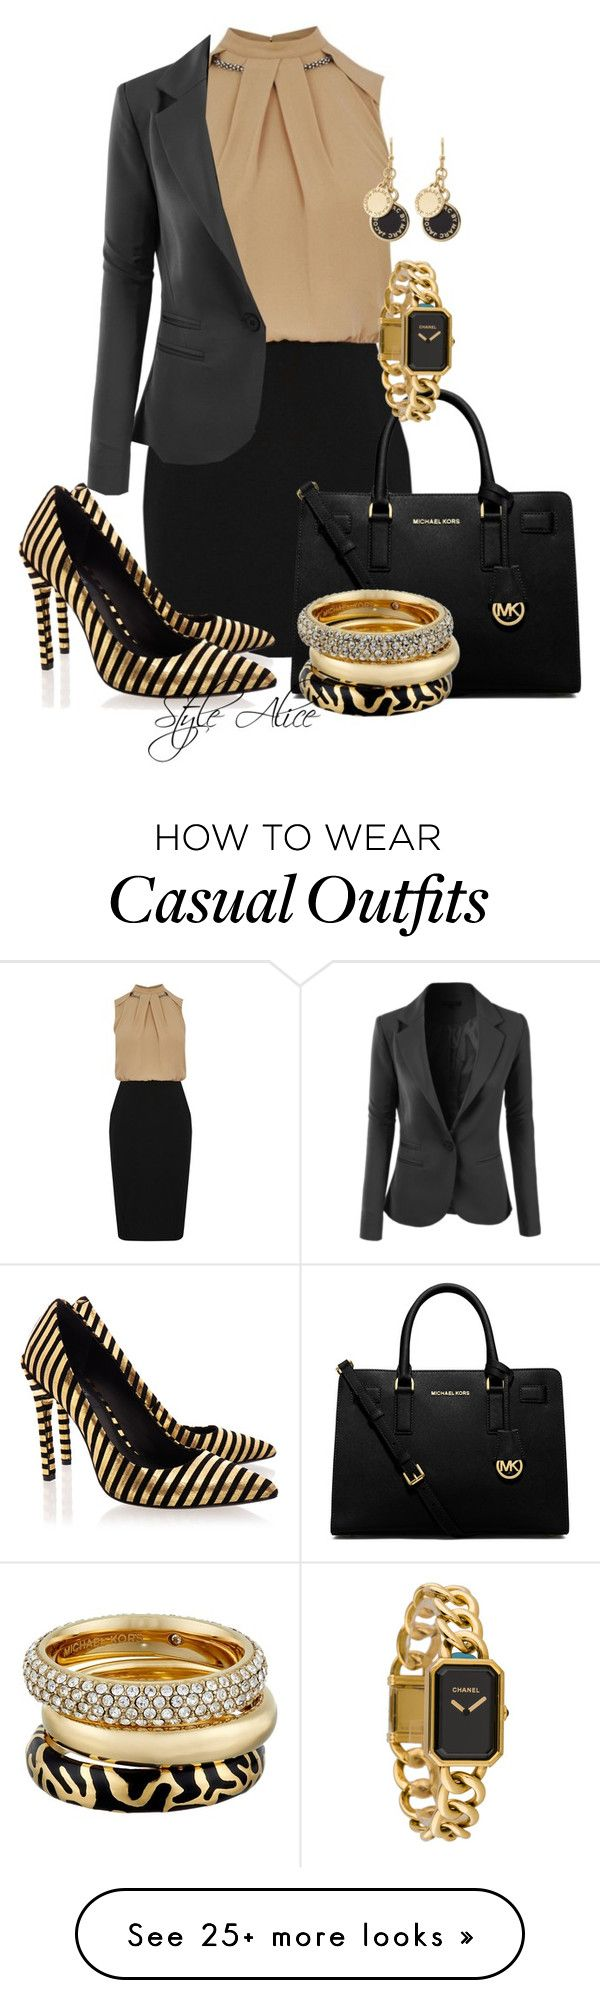 """Casual"" by alice-fortuna on Polyvore featuring Oasis, LE3NO, MICHAEL Michael Kors, Rachel Zoe, Michael Kors, Marc by Marc Jacobs and Chanel"